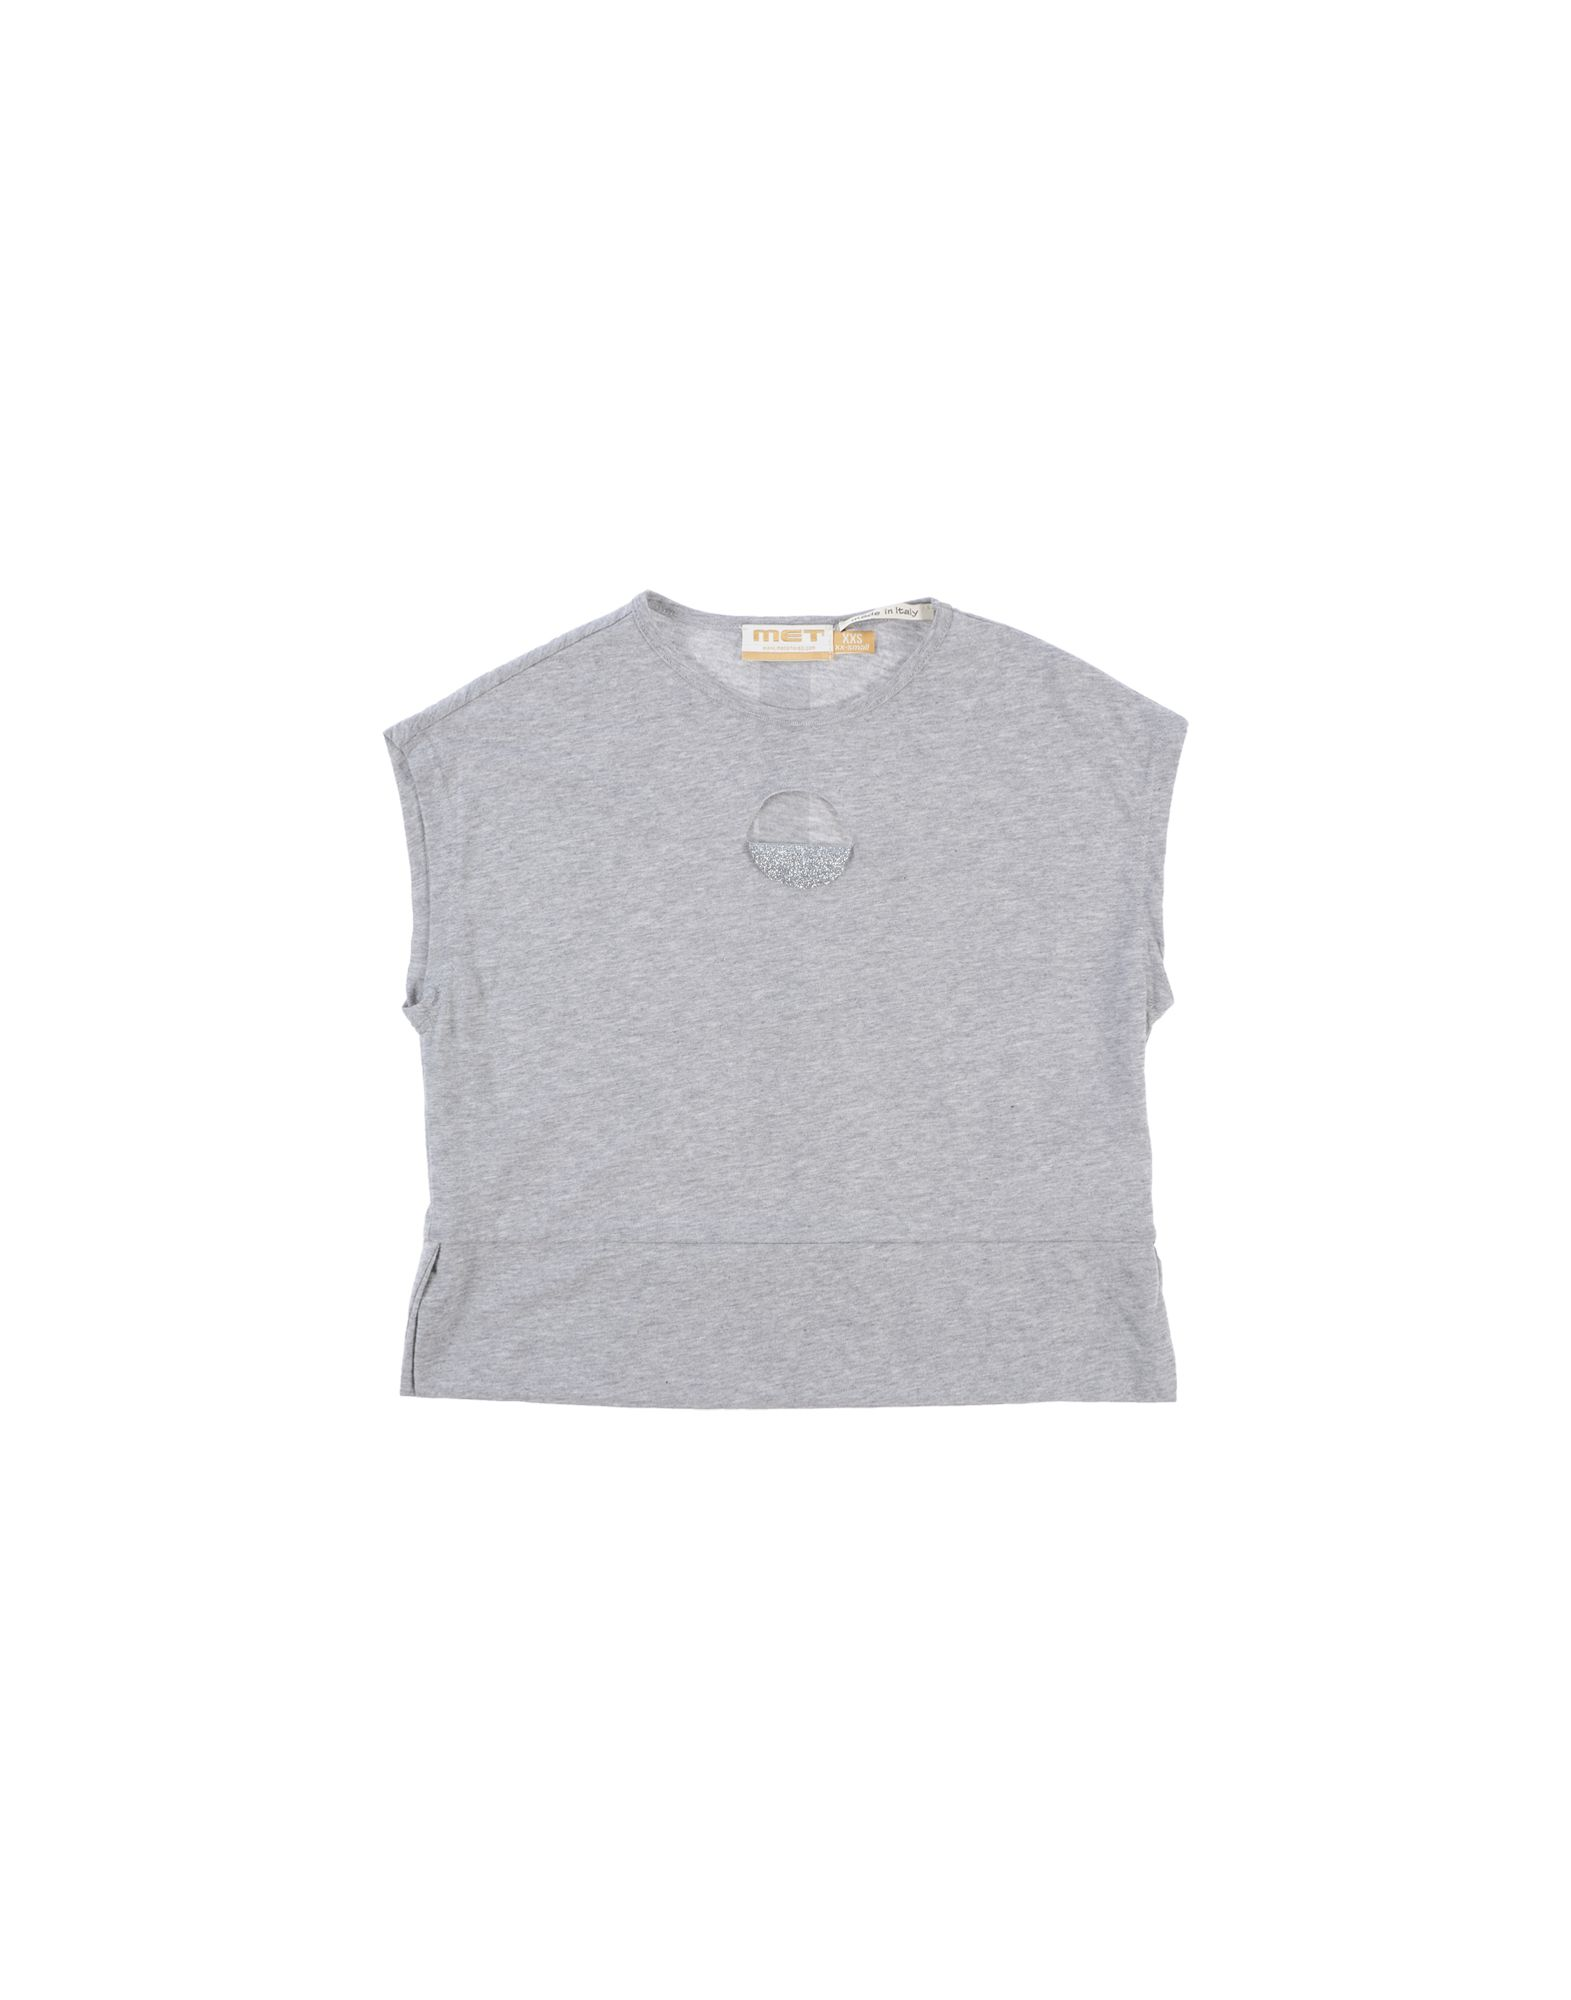 Met Jeans Kids' T-shirts In Gray